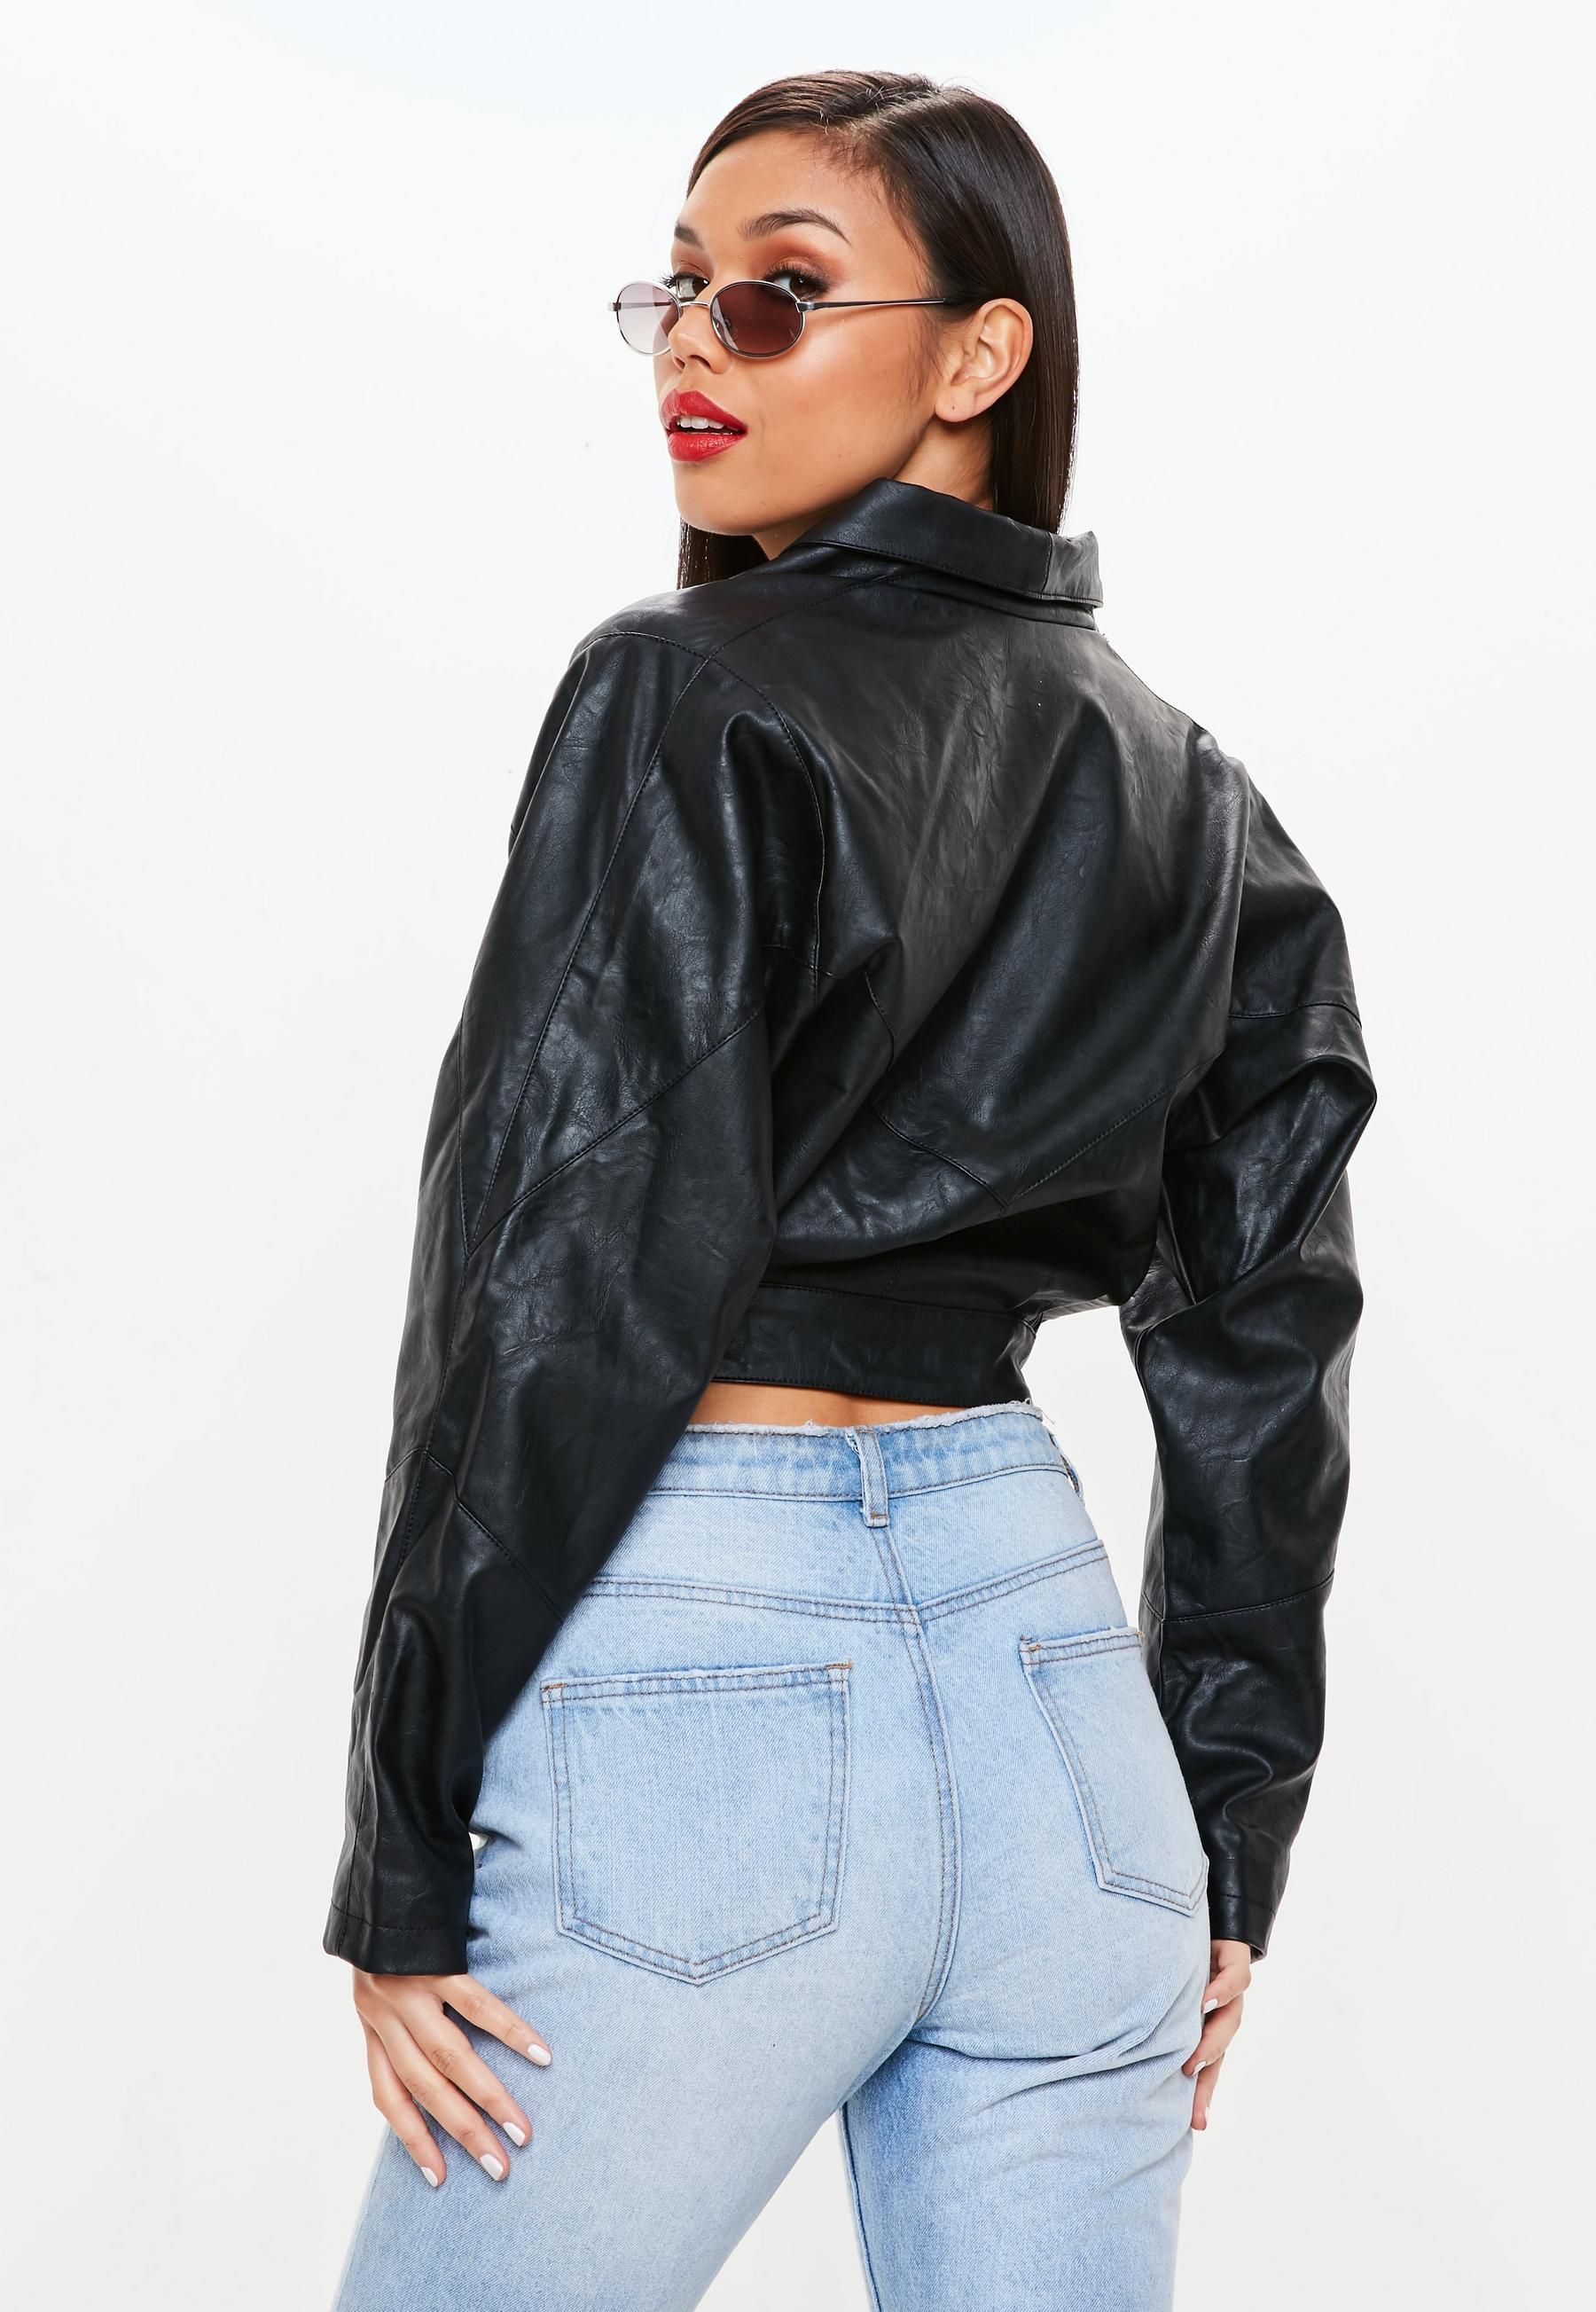 756b791291b9 Black 80 s Sleeve Faux Leather Jacket